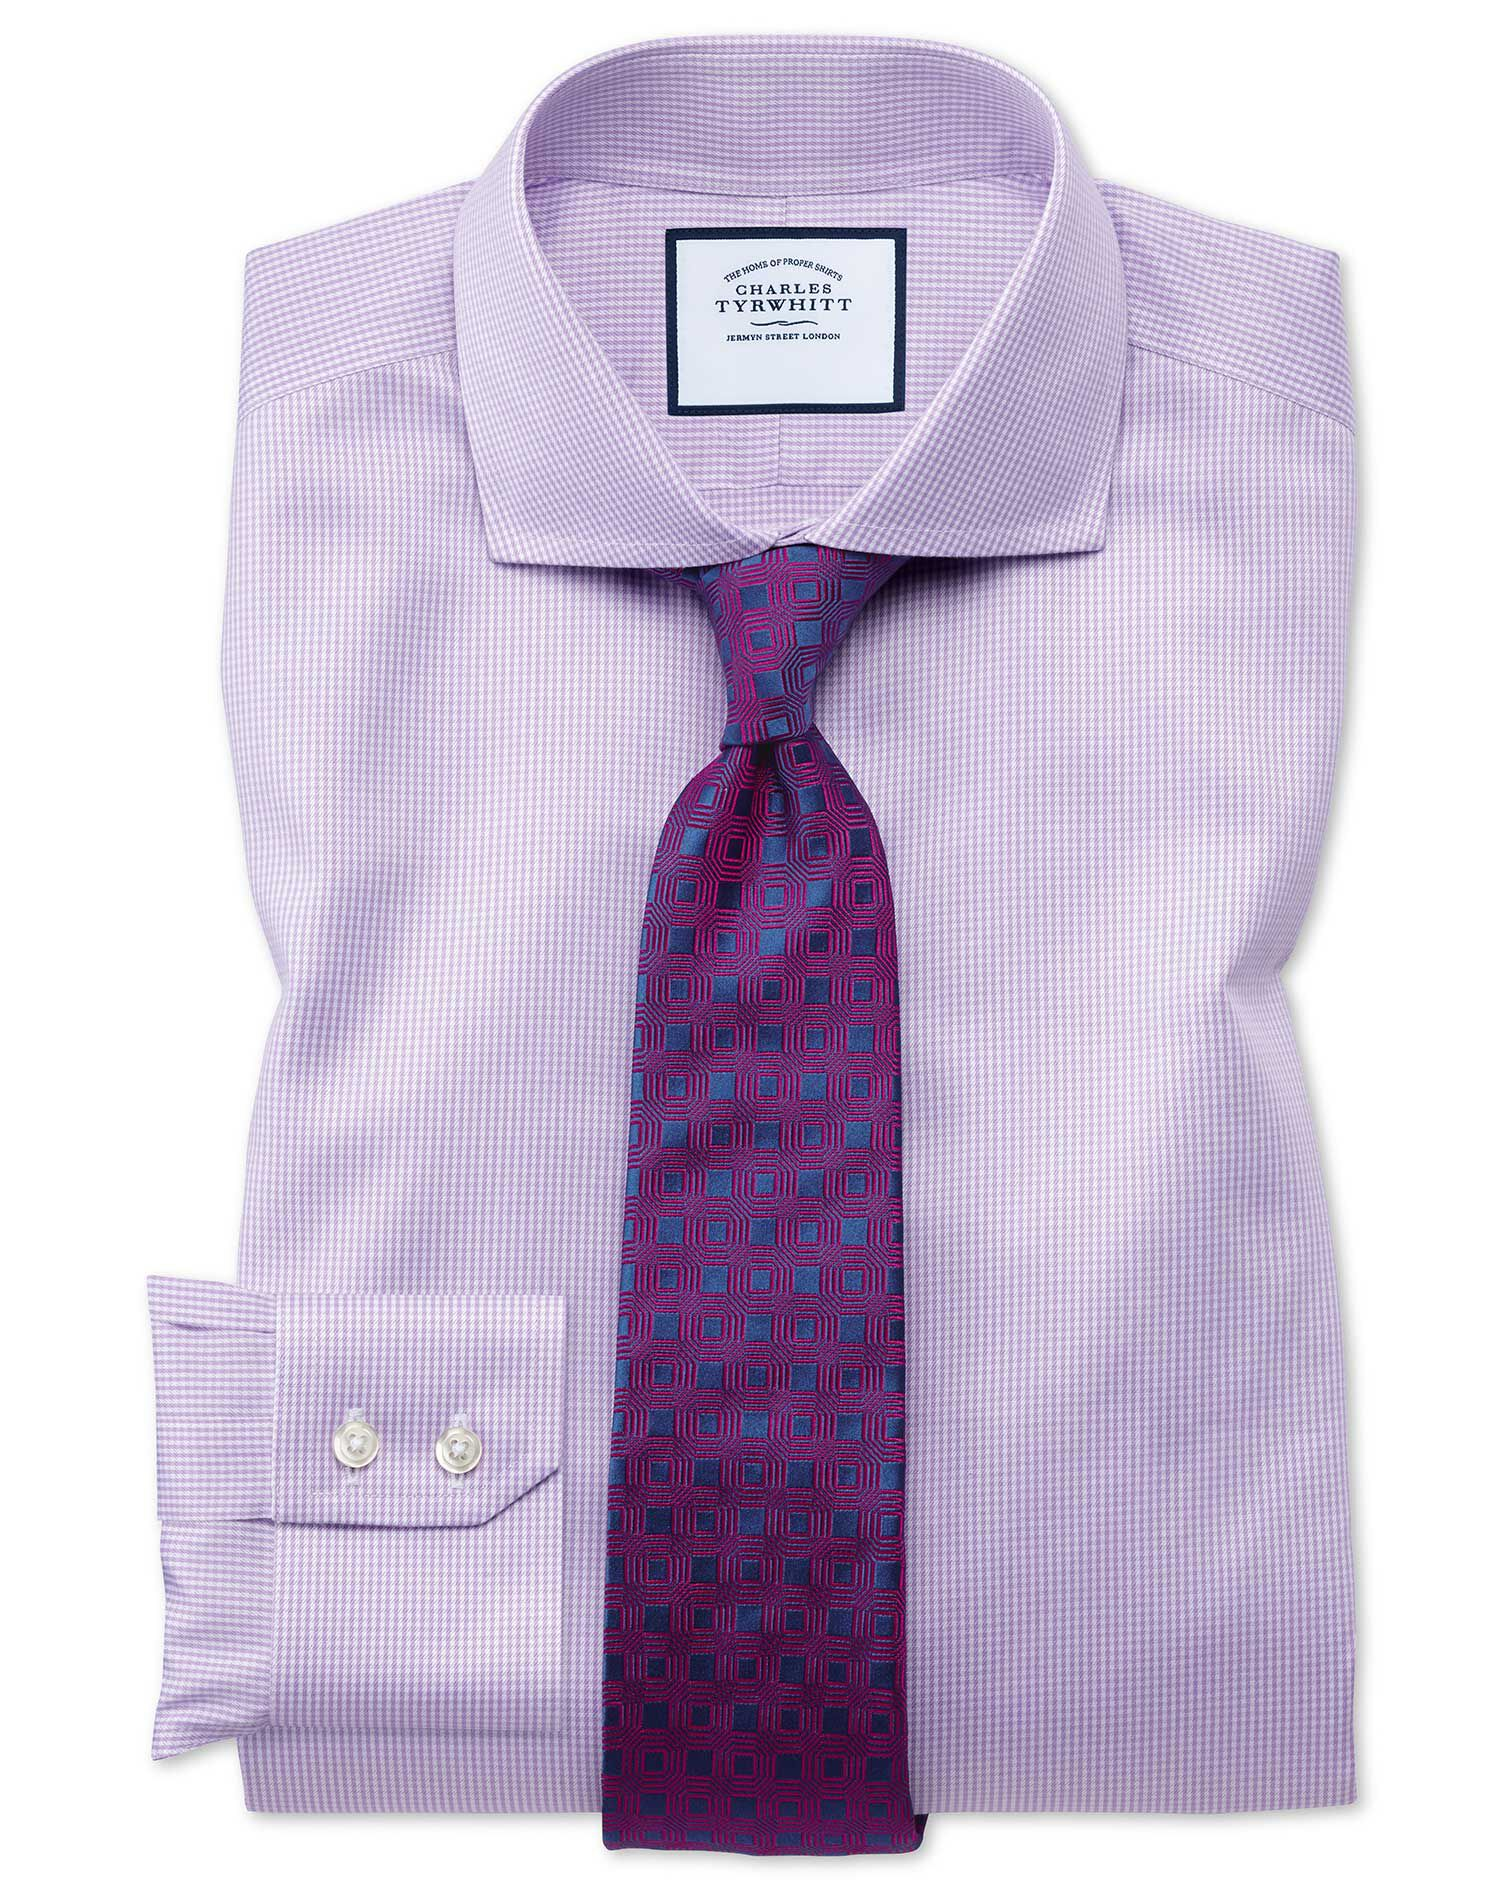 Extra Slim Fit Cutaway Non-Iron Puppytooth Lilac Cotton Formal Shirt Double Cuff Size 17/36 by Charl